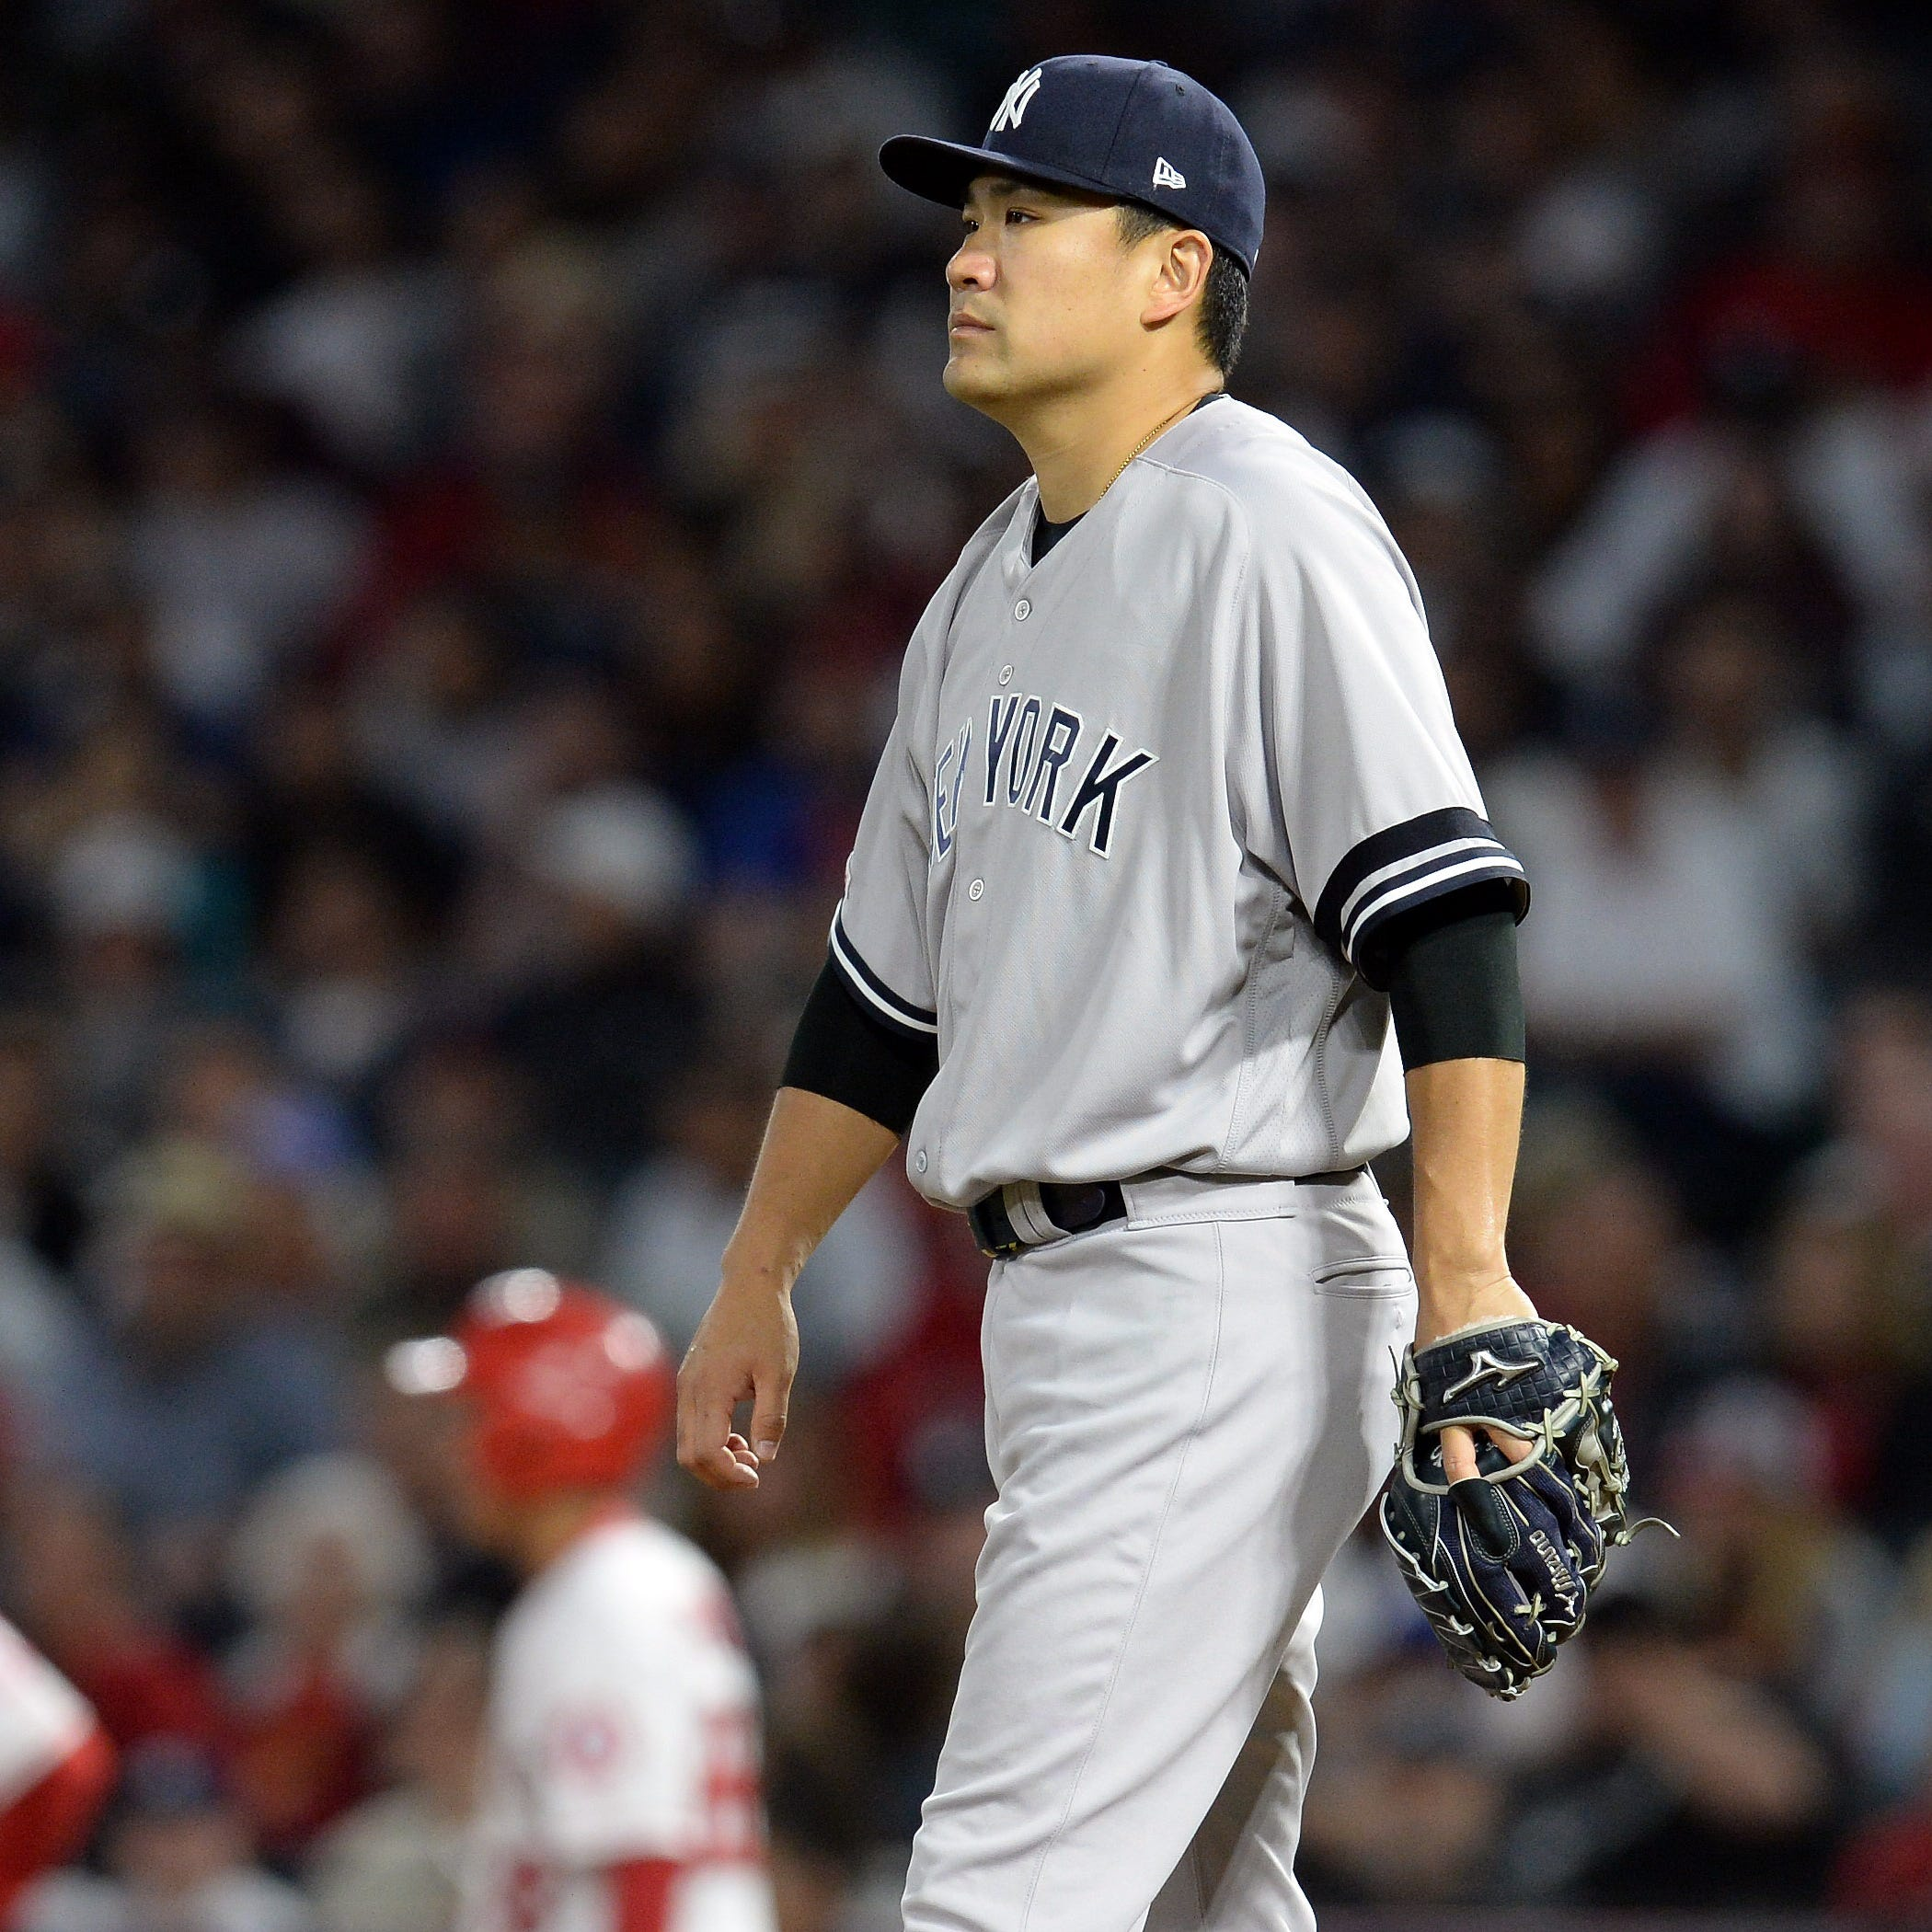 Yankees blow a four-run lead, drop their chance at a four-game sweep of the Angels